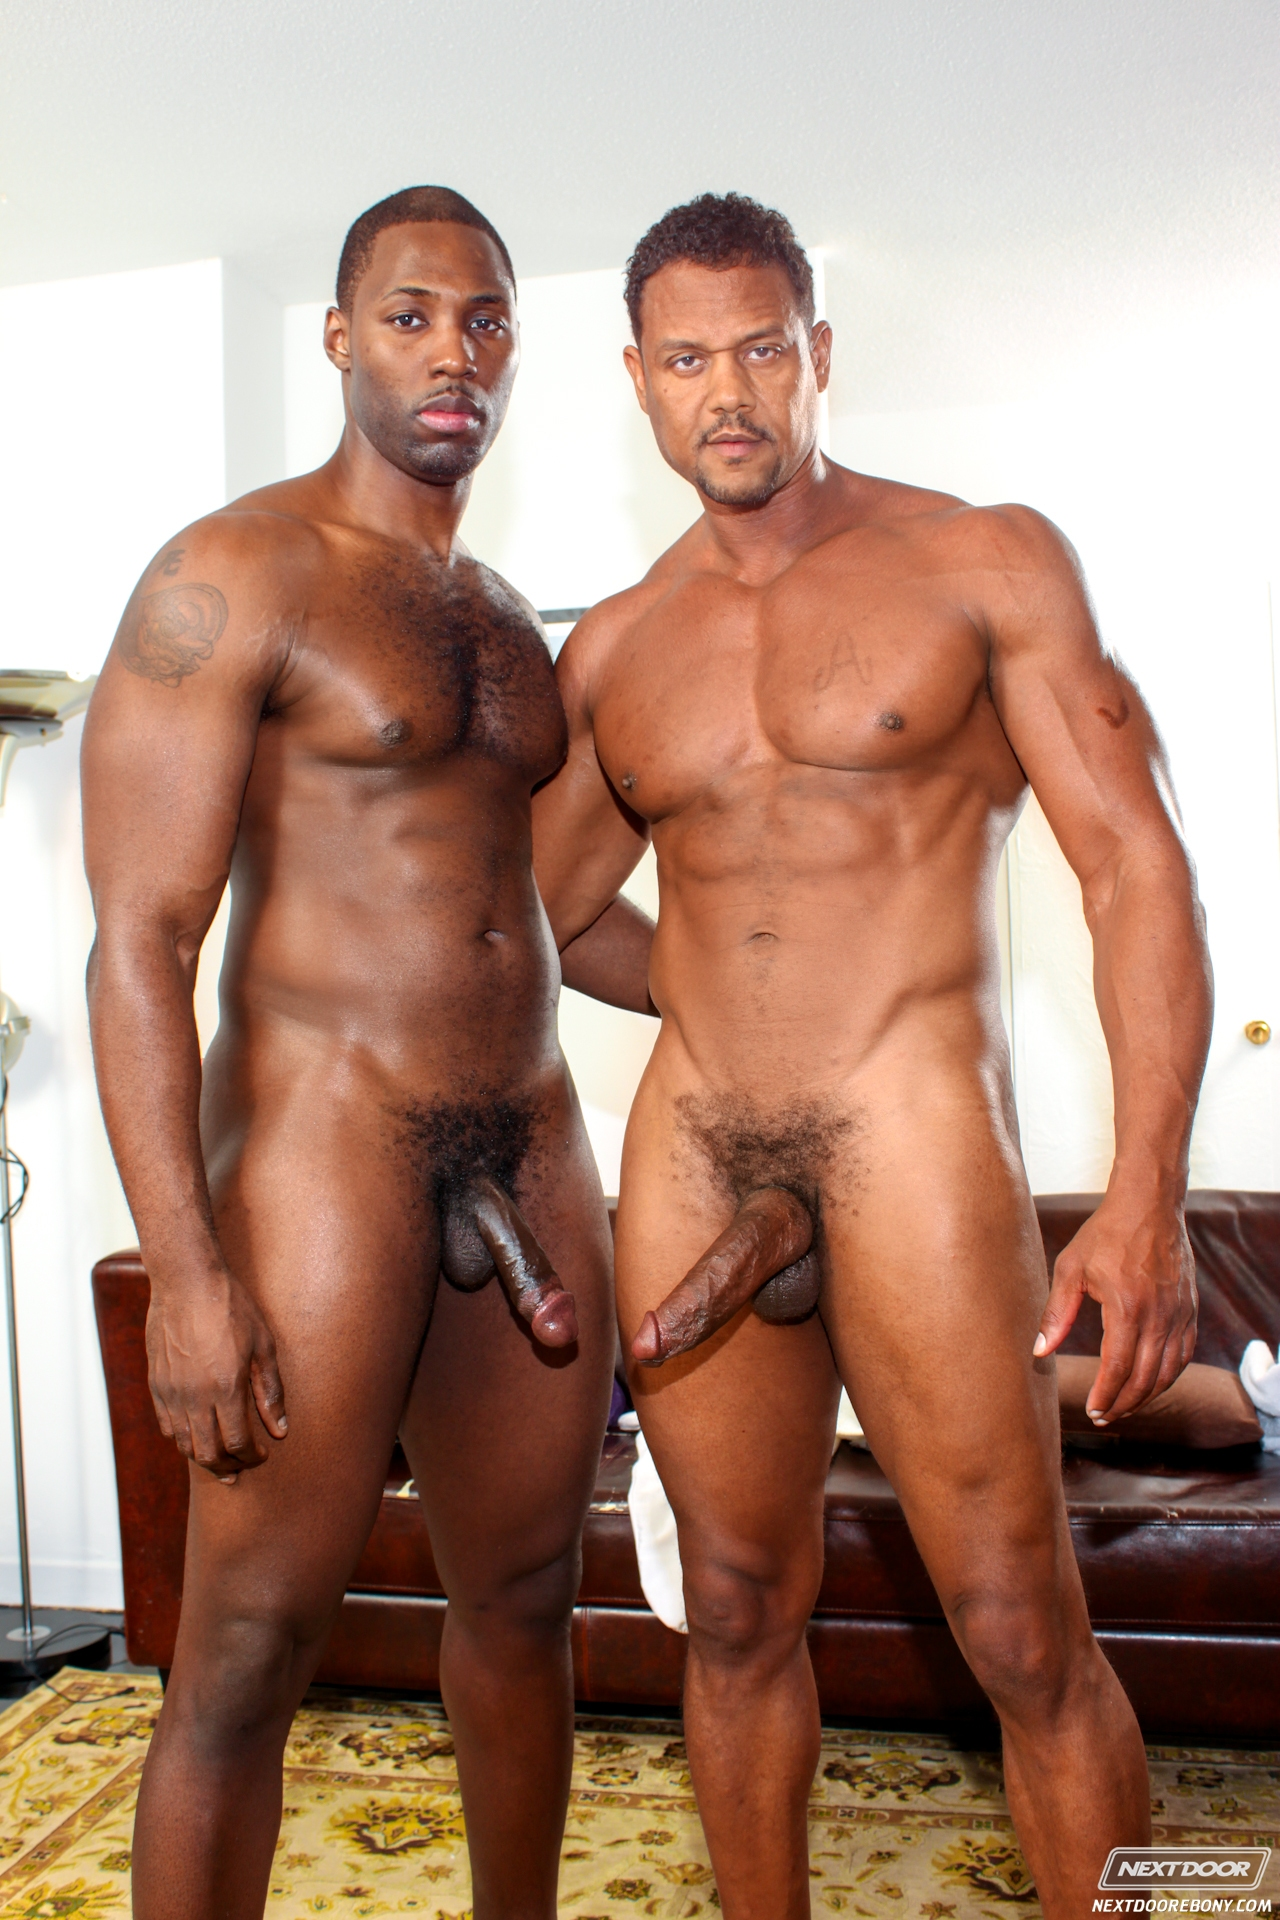 black gay escort videos amateur español